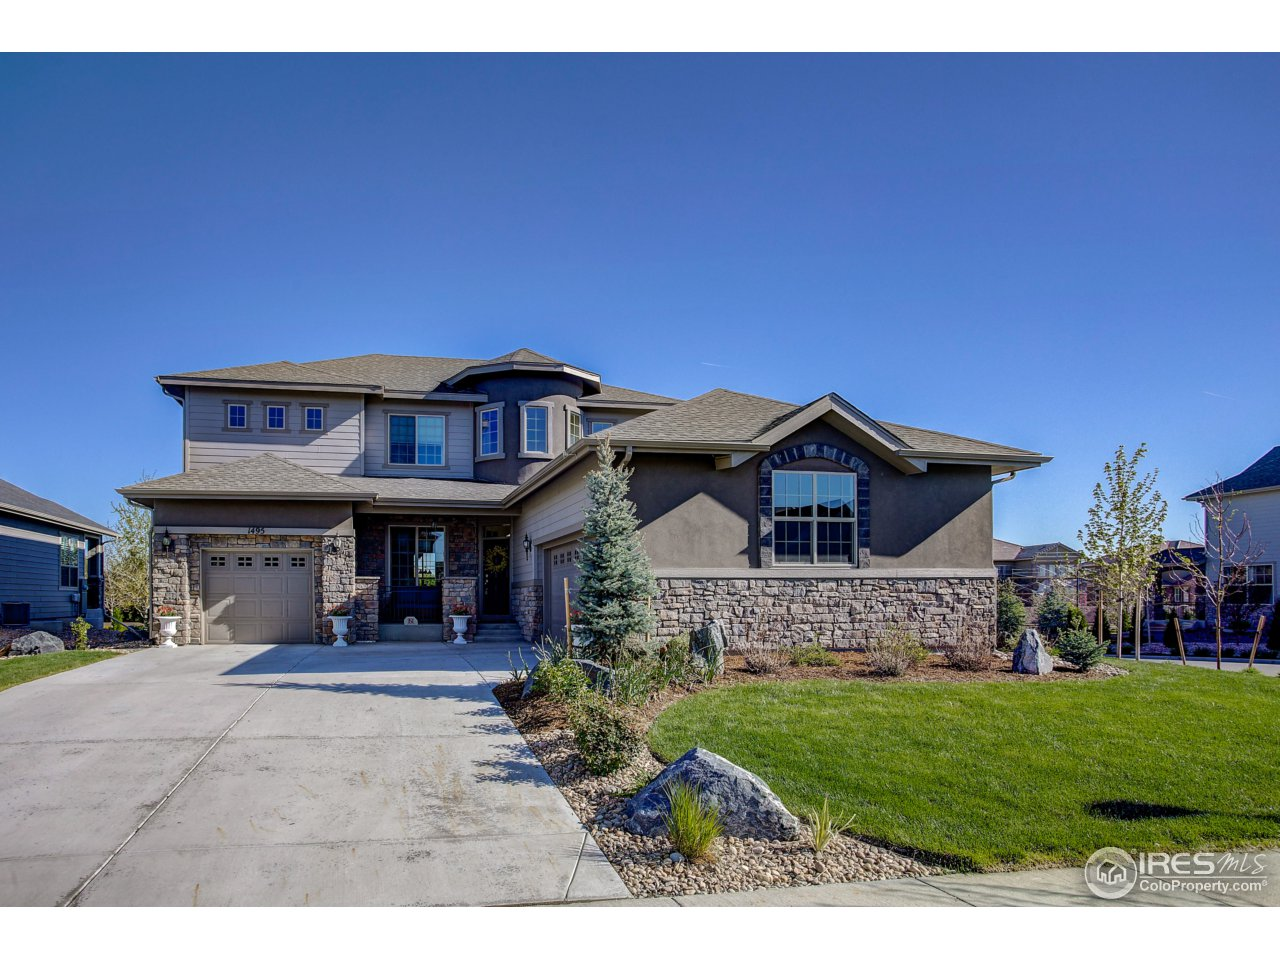 1495 W 137th Ave, Broomfield, CO 80023